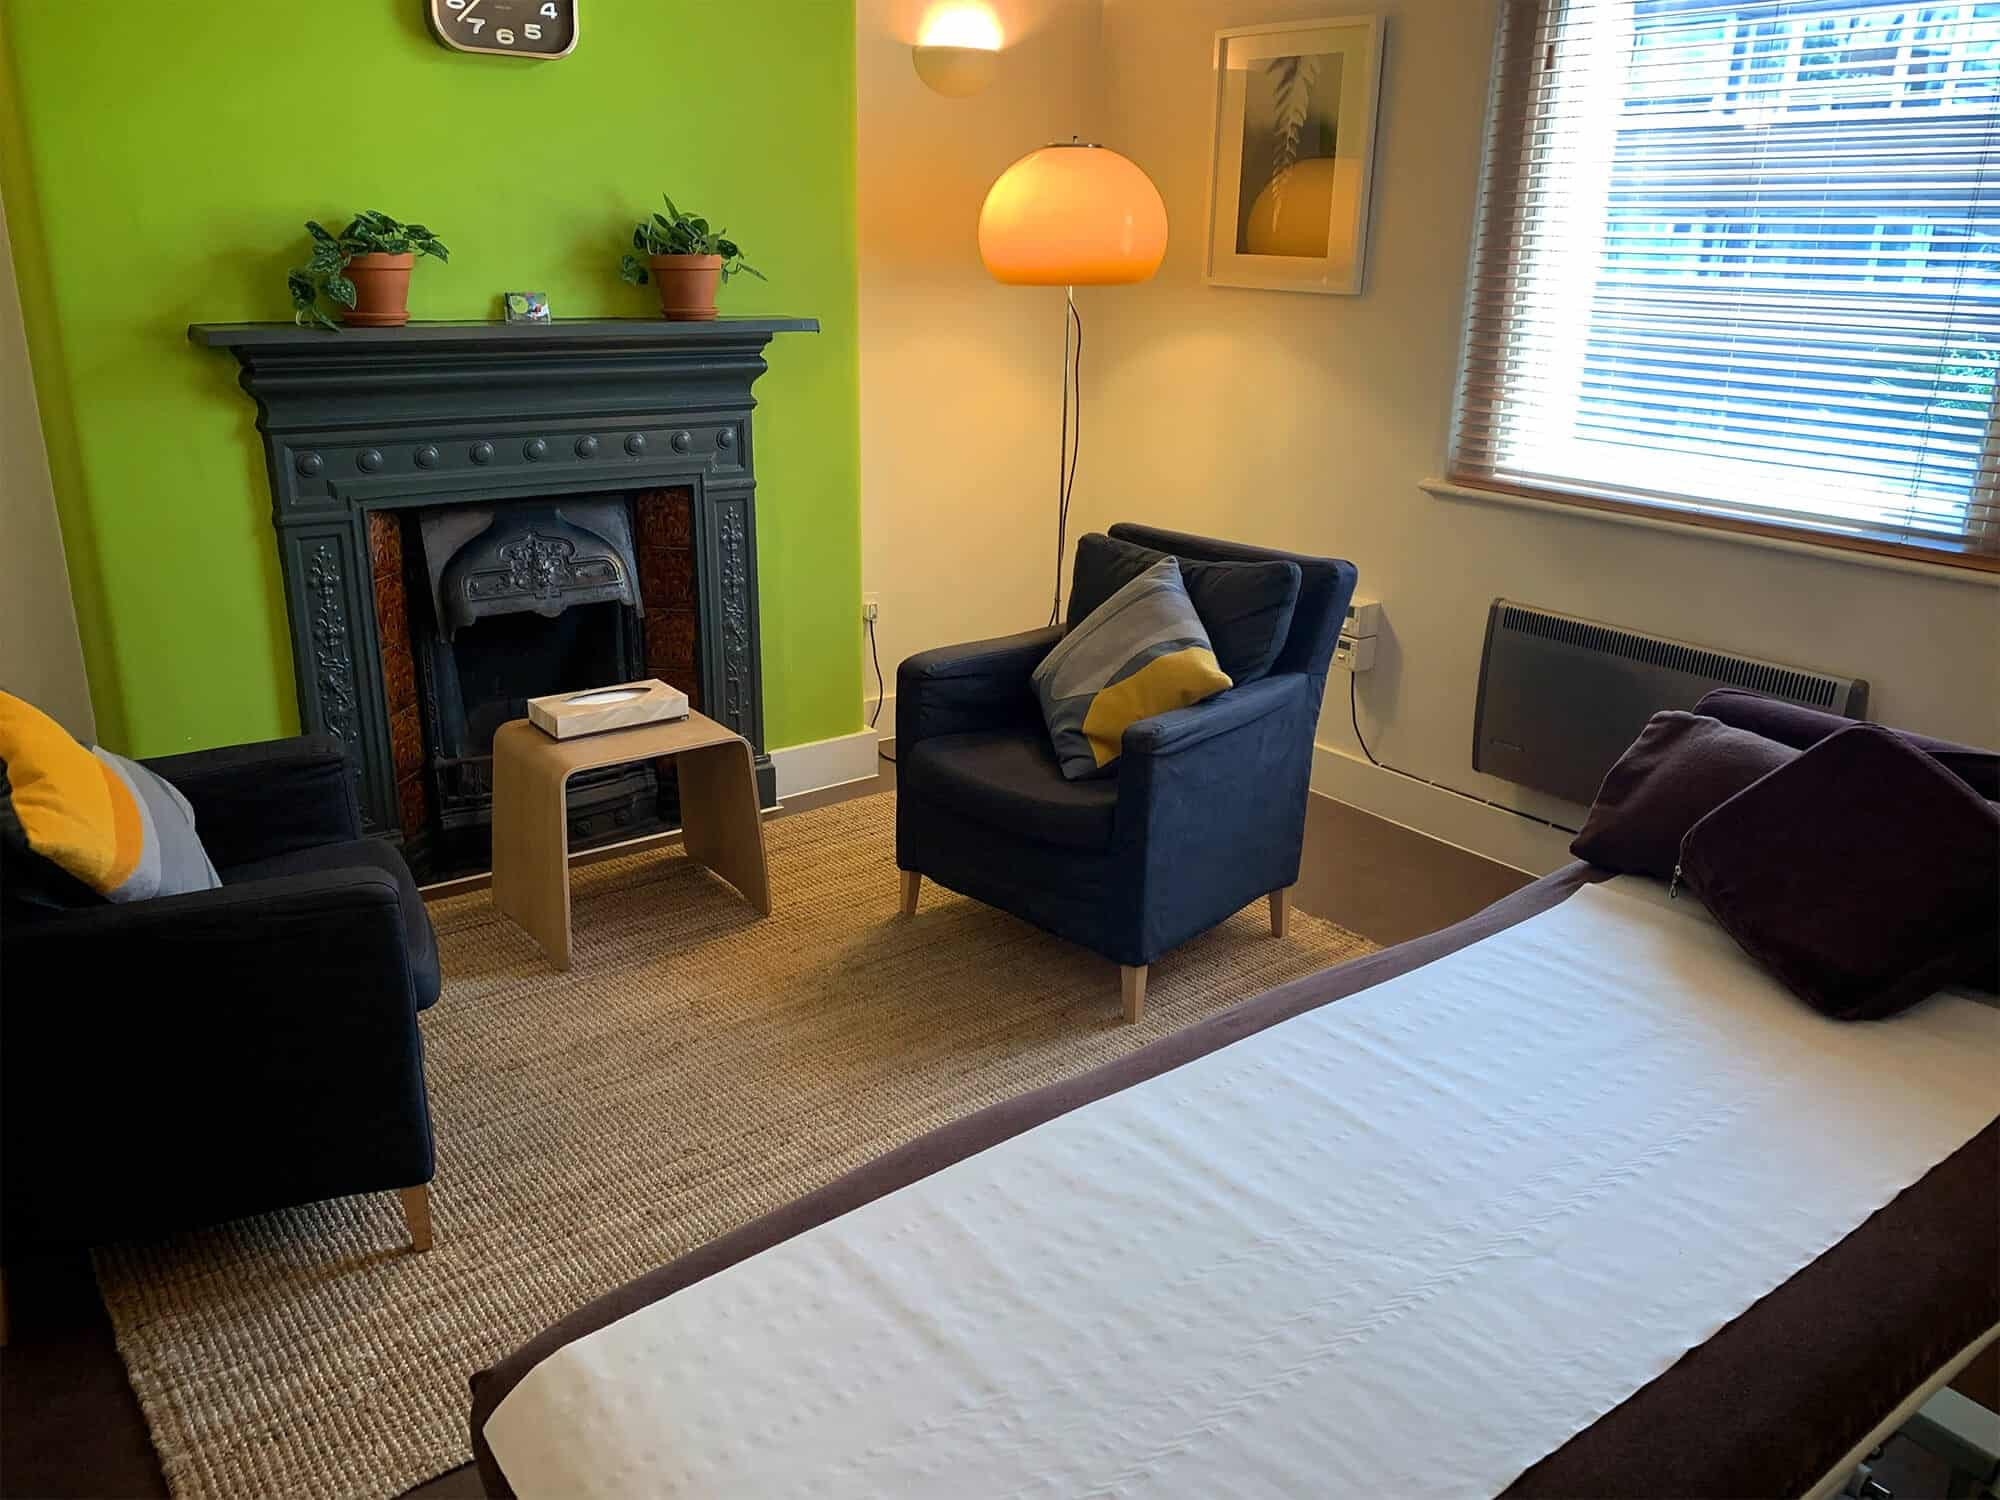 Room 4 our talking and manual therapy room to rent for Central and East London in Bethnal Green